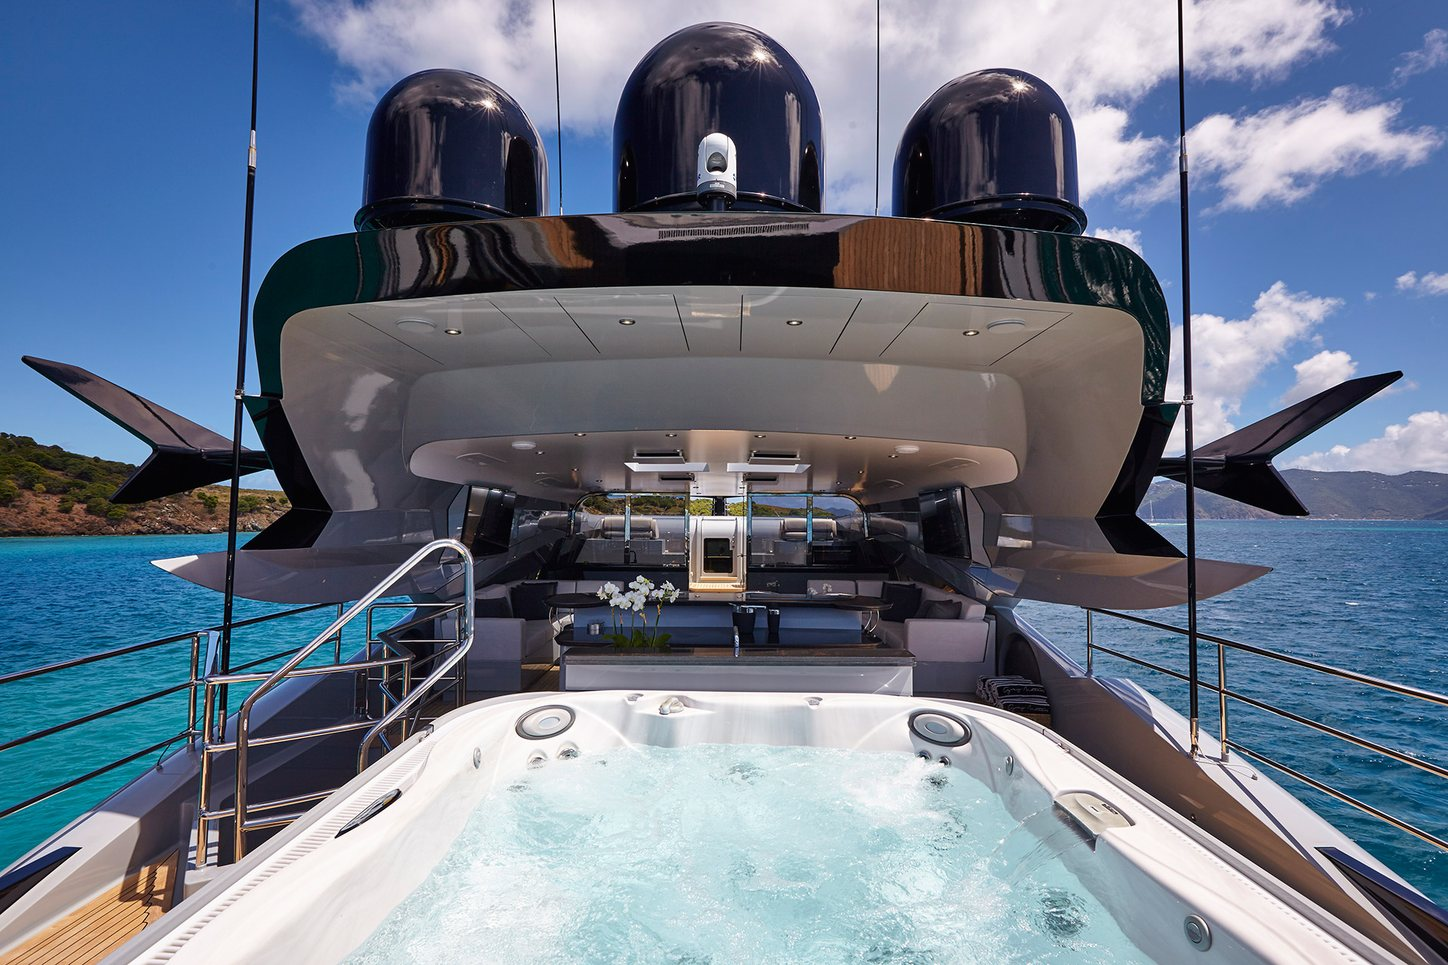 pool on sundeck in foreground of luxury yacht grey matters